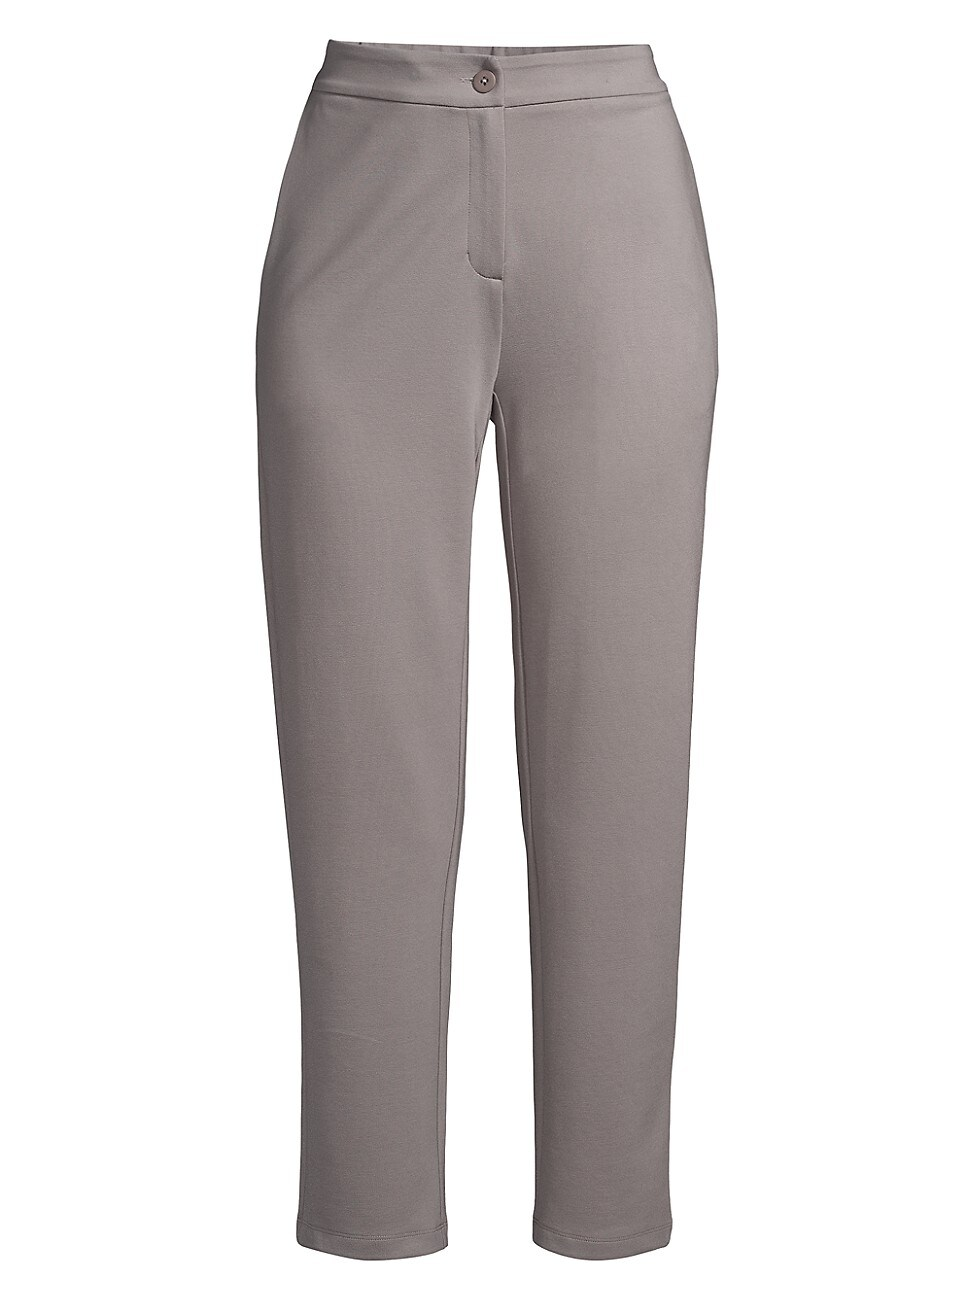 Eileen Fisher WOMEN'S SLOUCHY ANKLE PANTS